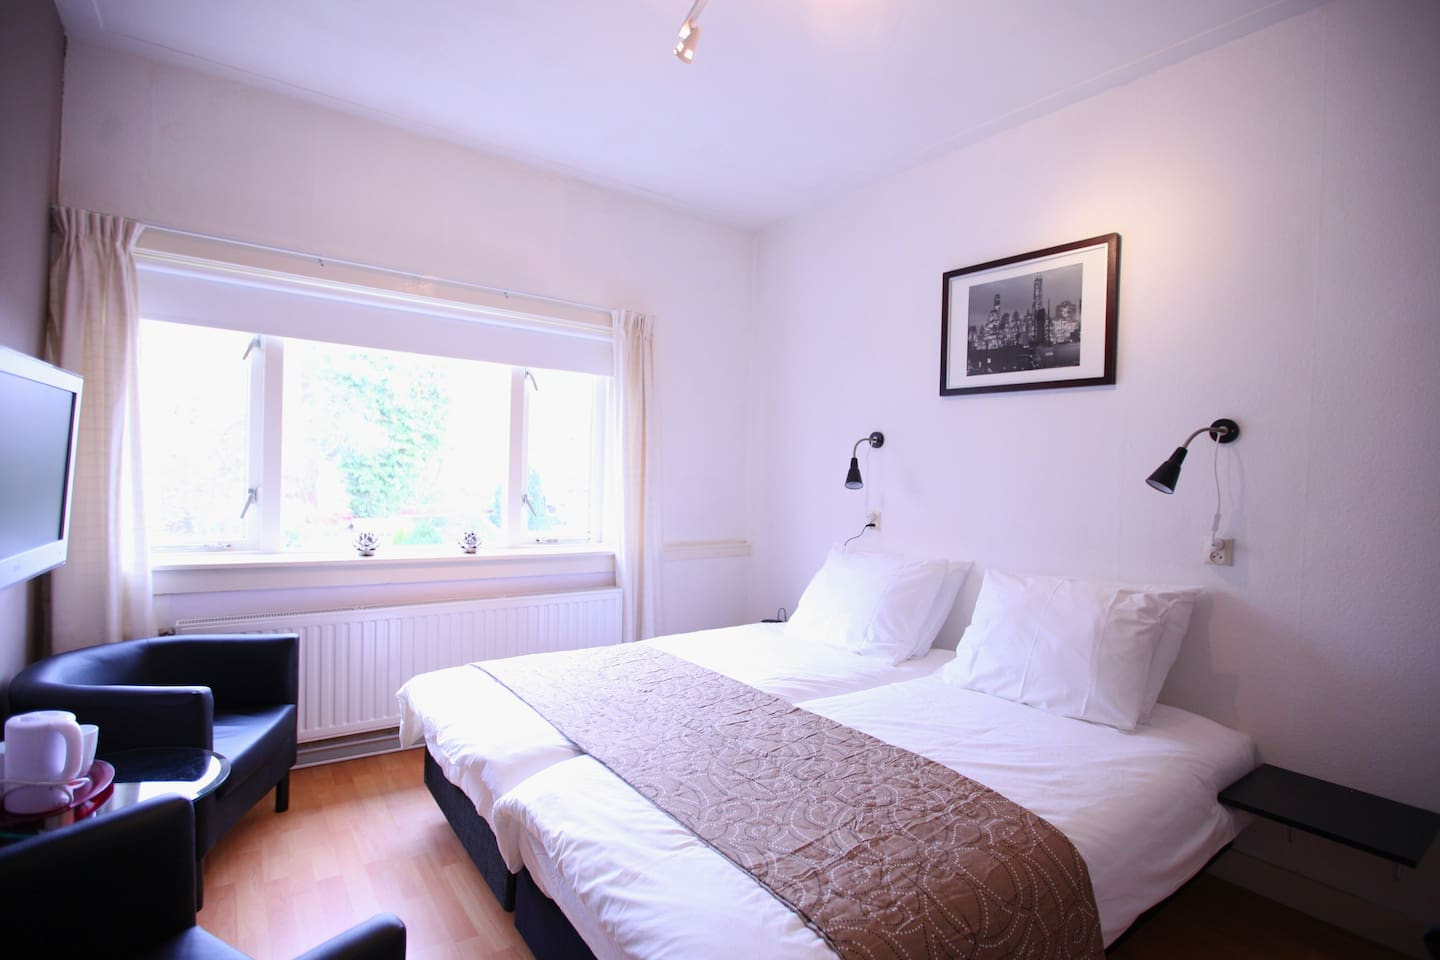 Top 20 bed and breakfasts leiden: inns and b&bs   airbnb leiden ...